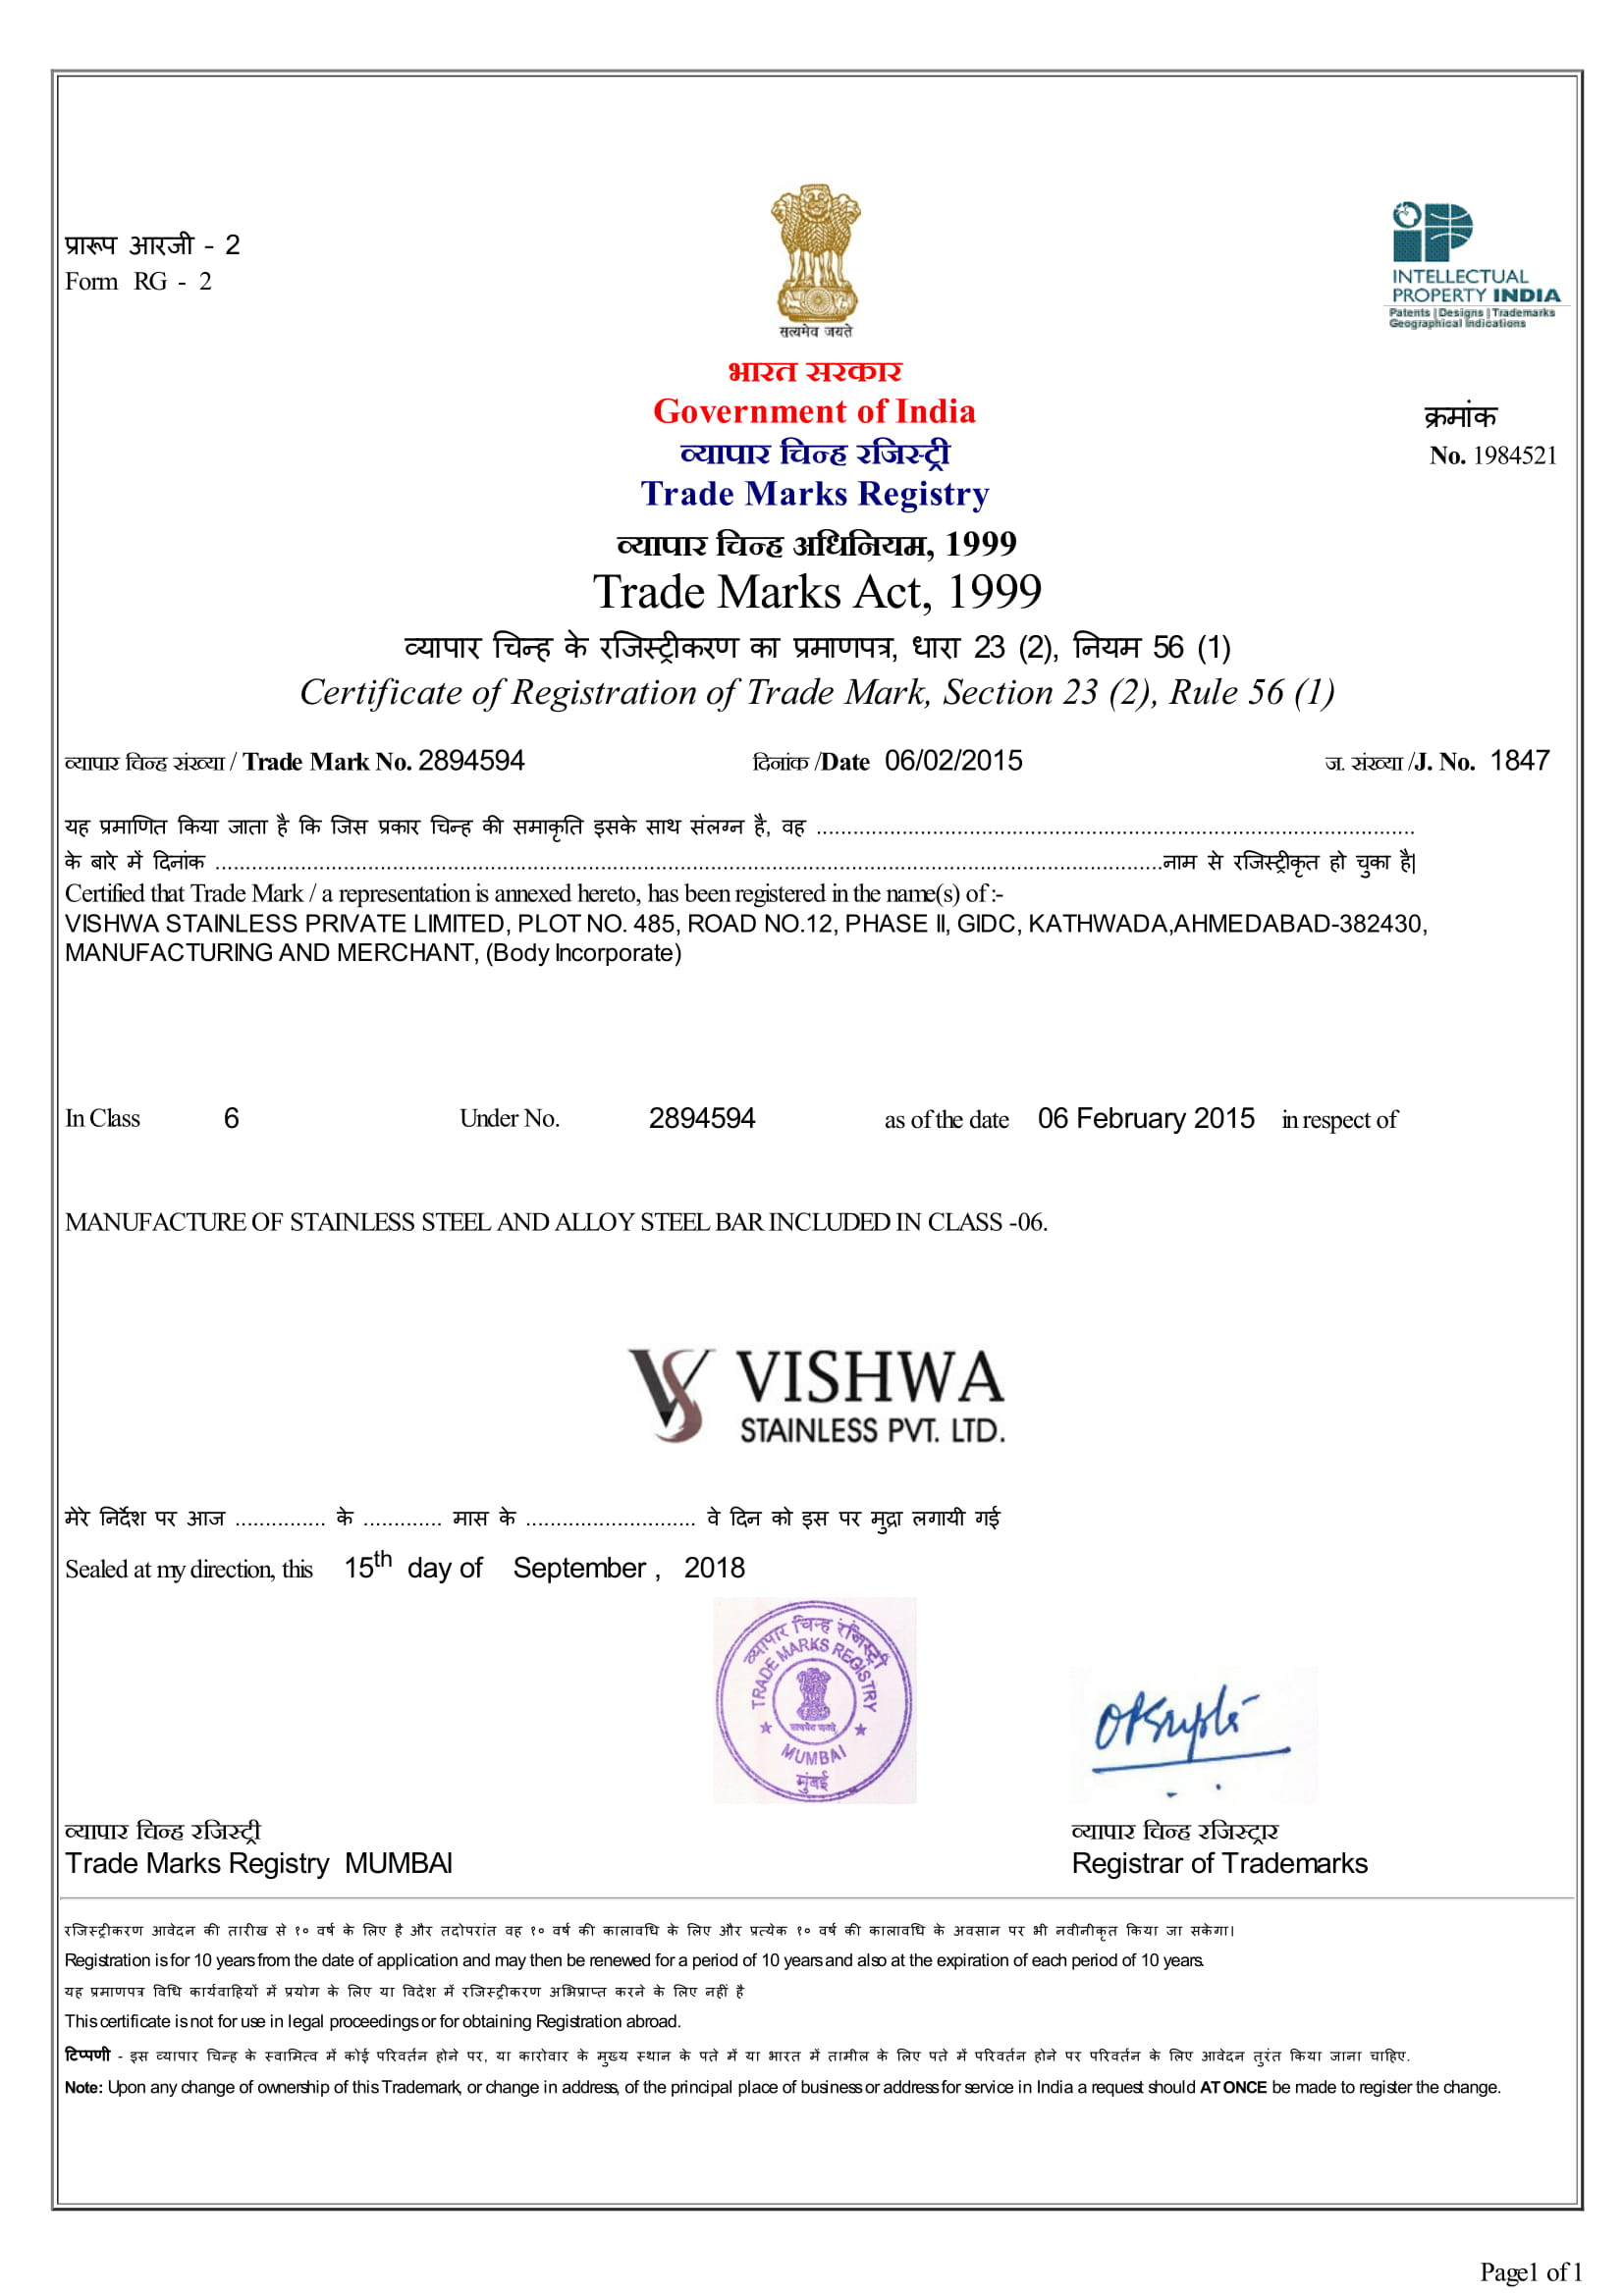 Vishwa Stainless Pvt. Ltd. Trademark Certificate-1